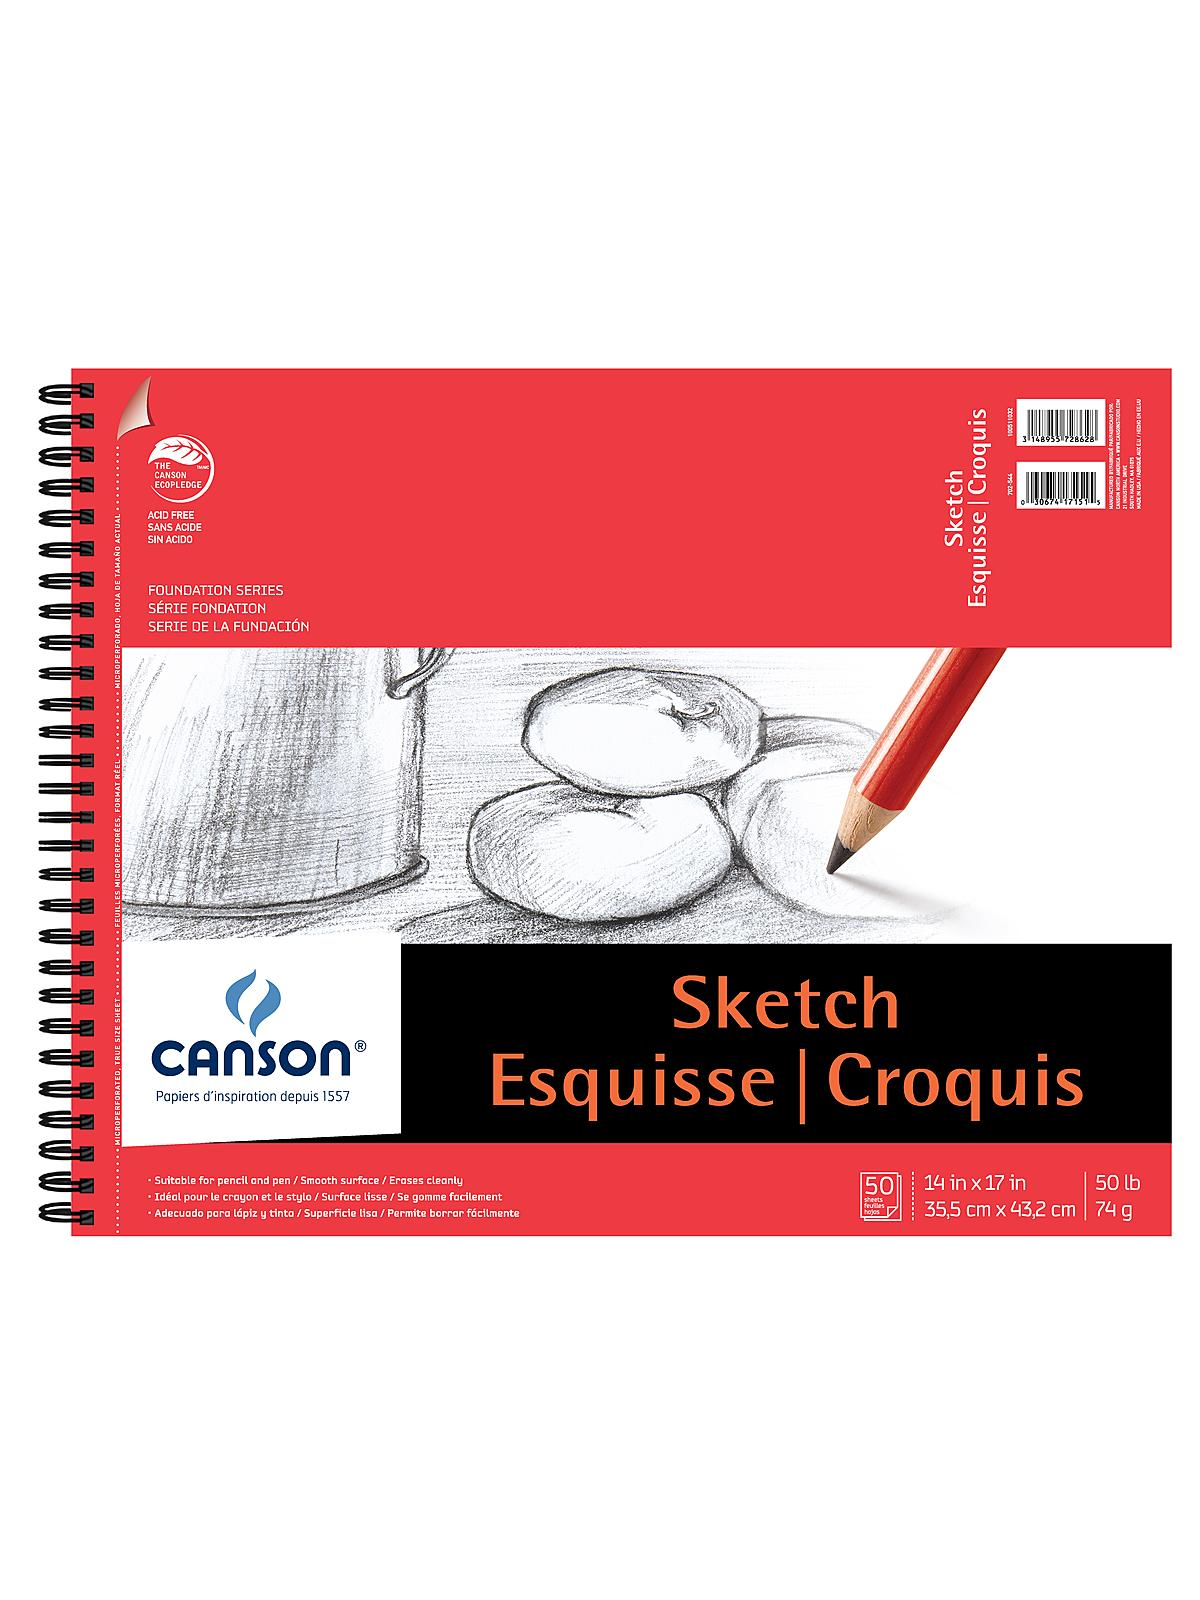 Foundation Sketch Pads